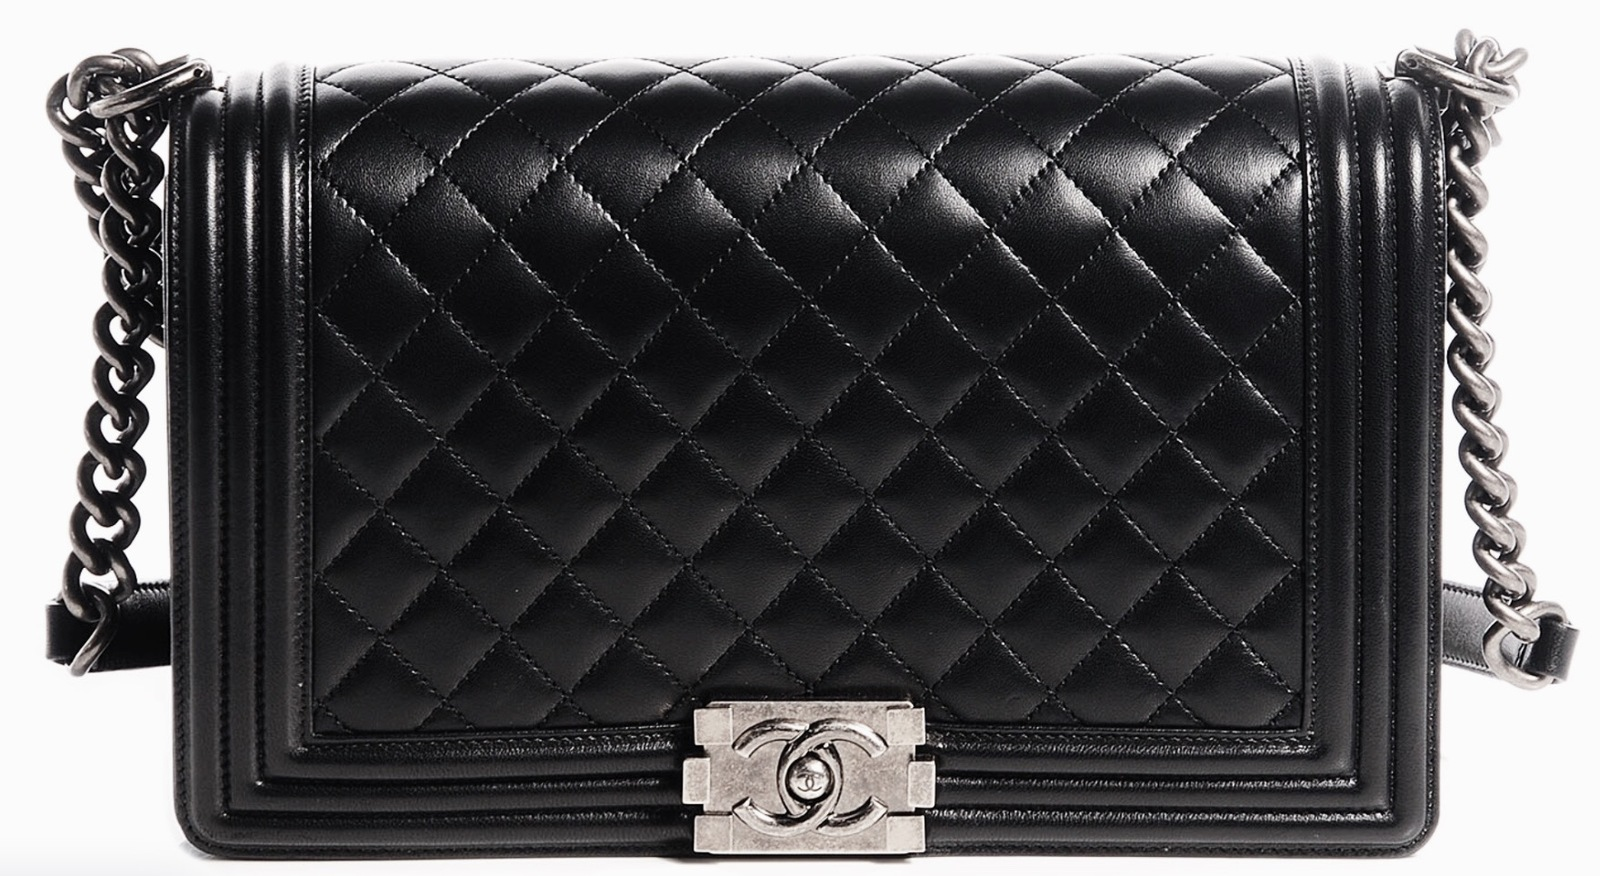 5ad8992e54b7 Chanel Black Lambskin Chain Quilted Medium Boy Bag